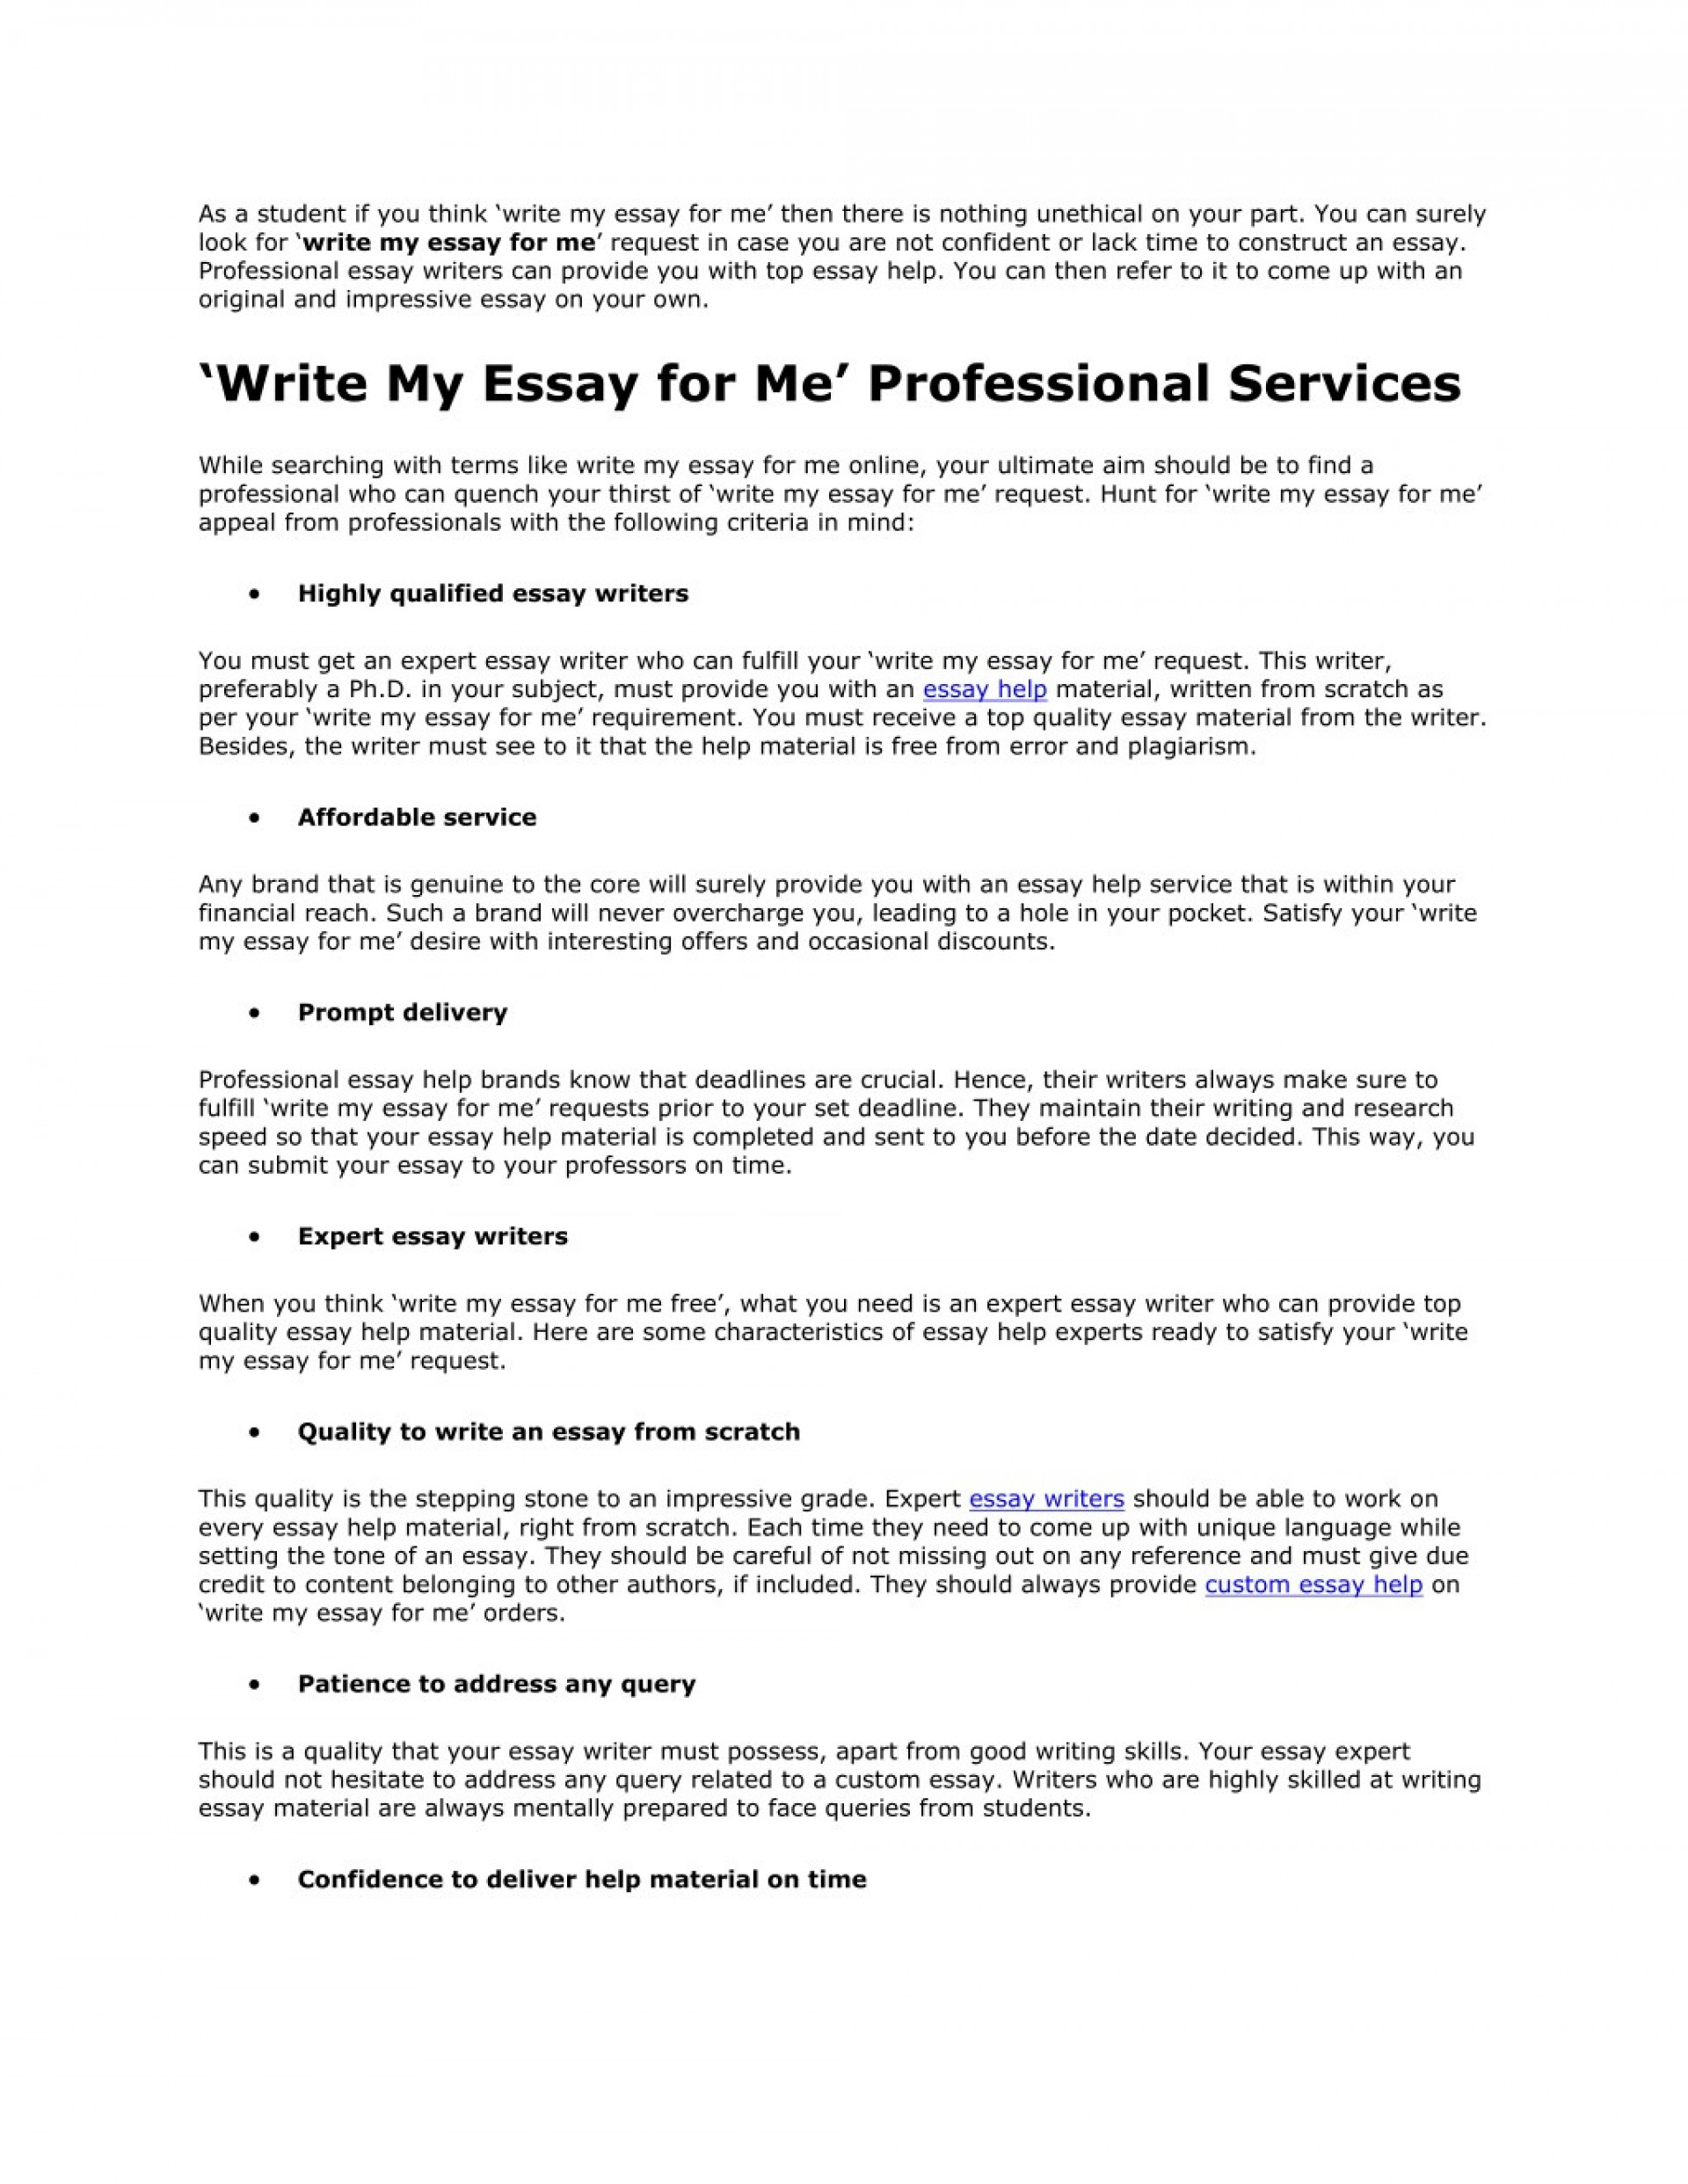 017 Write My Essay For Me Example As Student If You Think Surprising Free Online Generator 1920